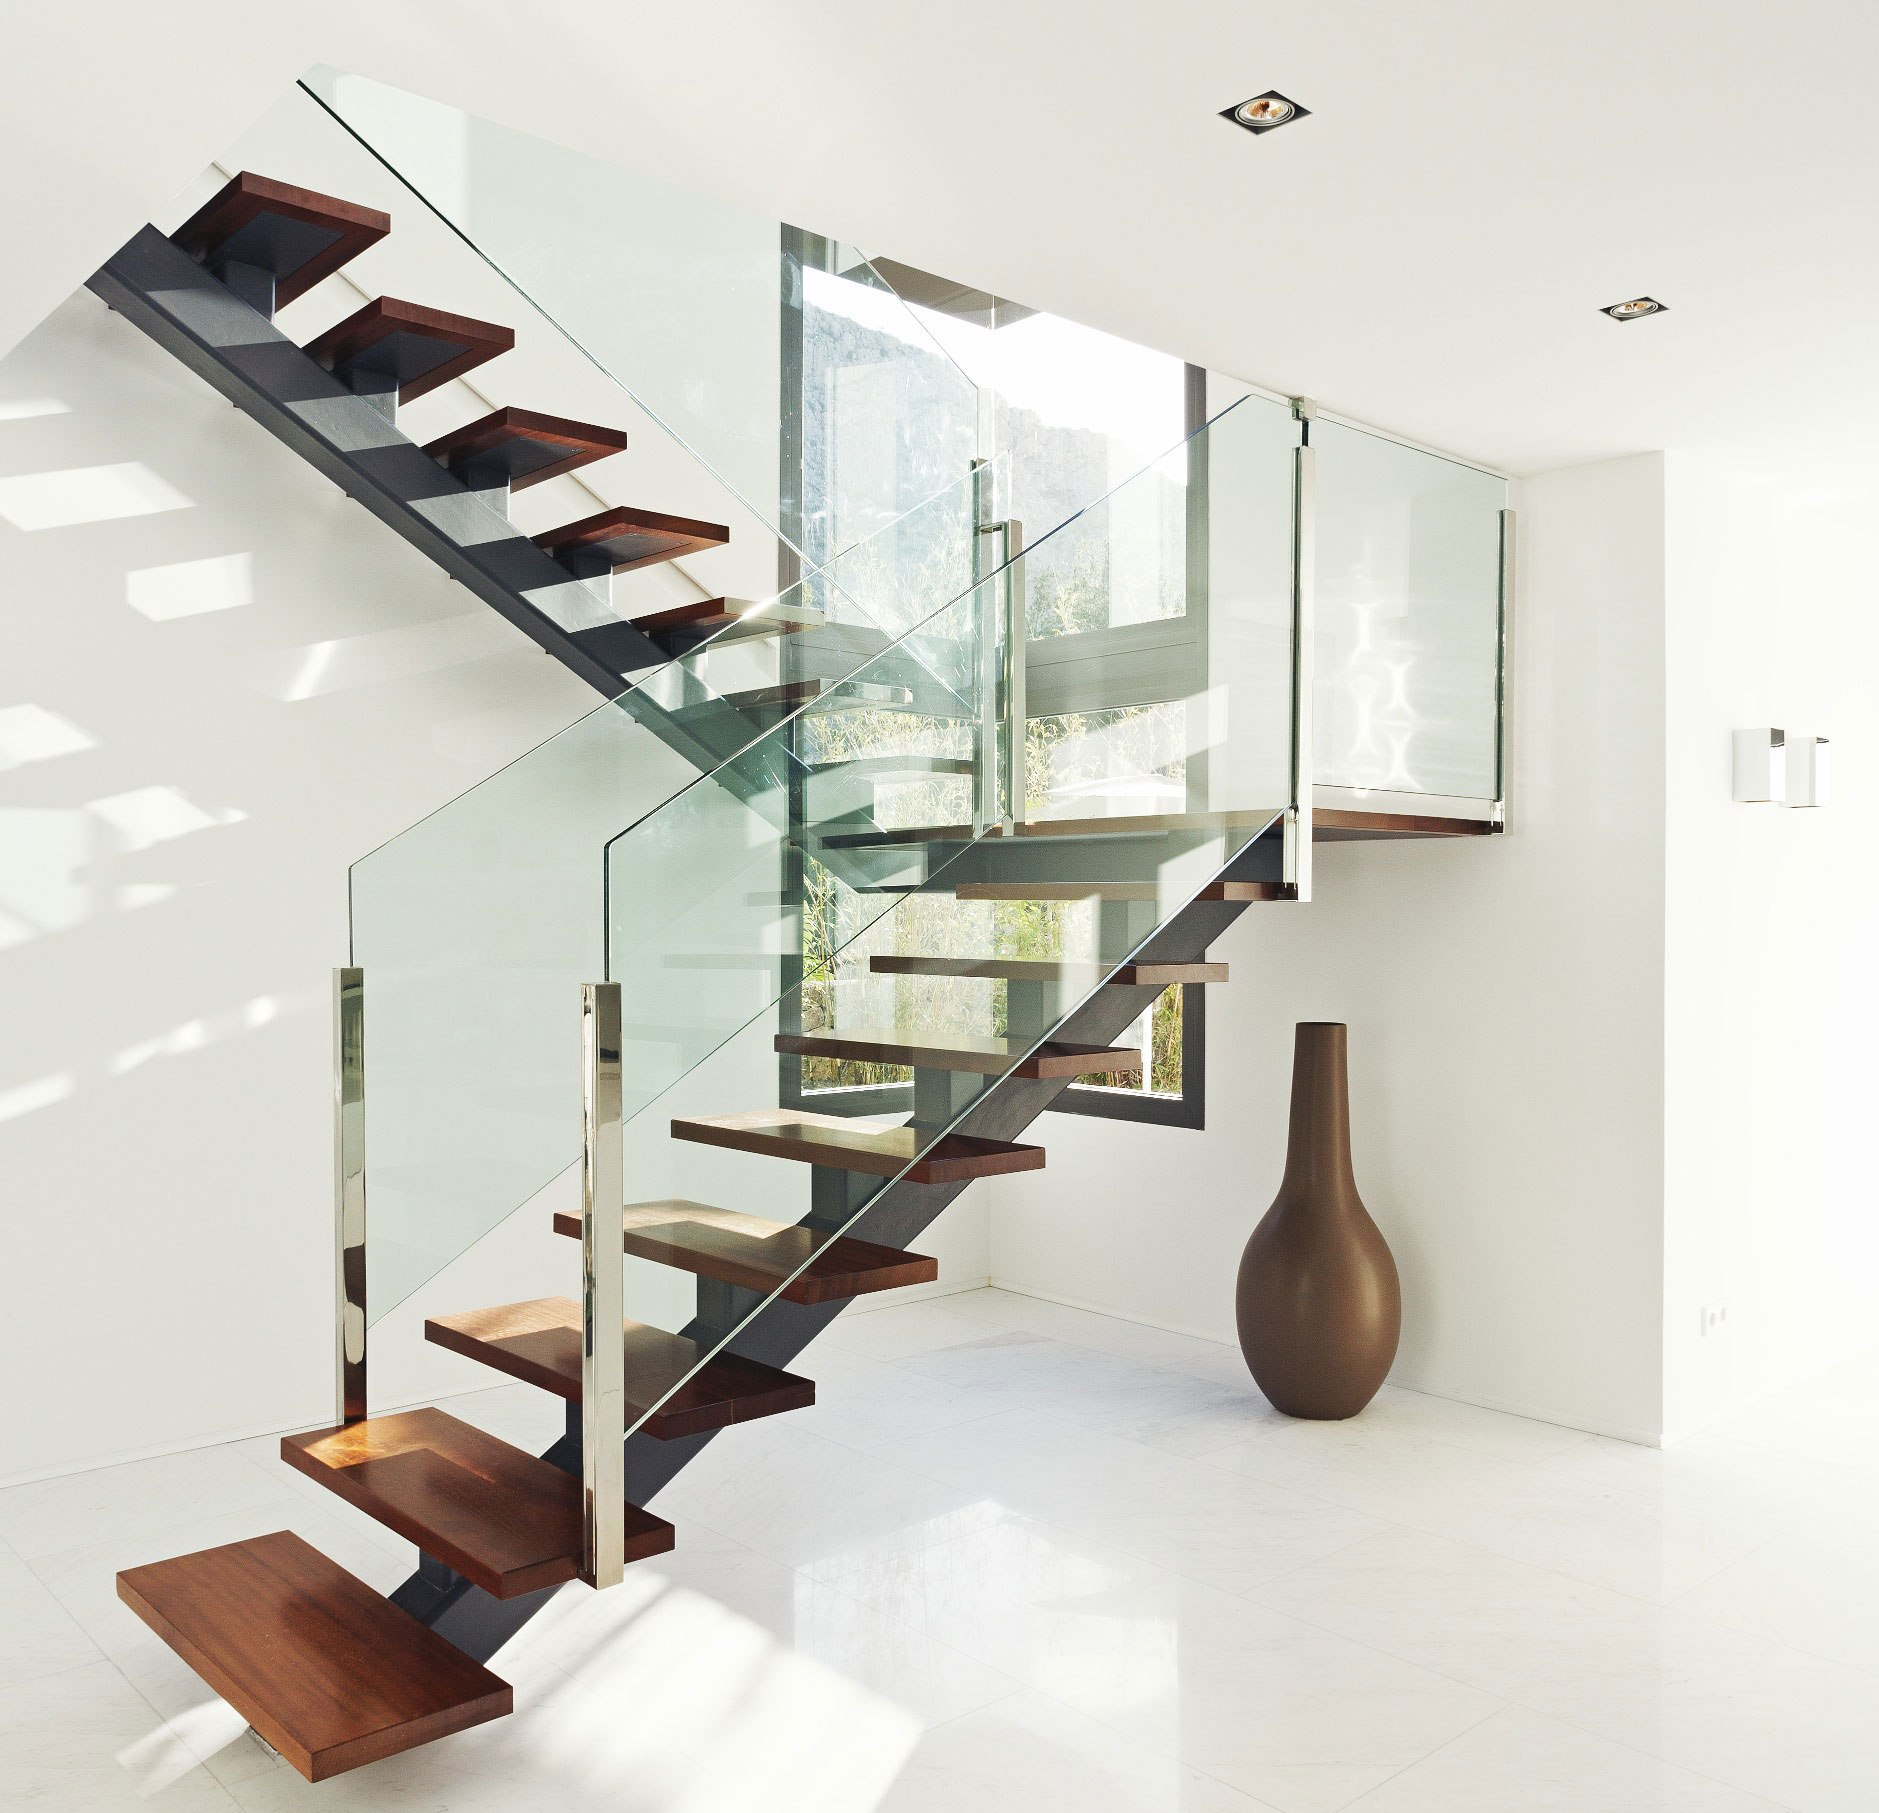 contemporary-metal-staircase-wooden-floating-steps-glass-railing-panes-design-ideas